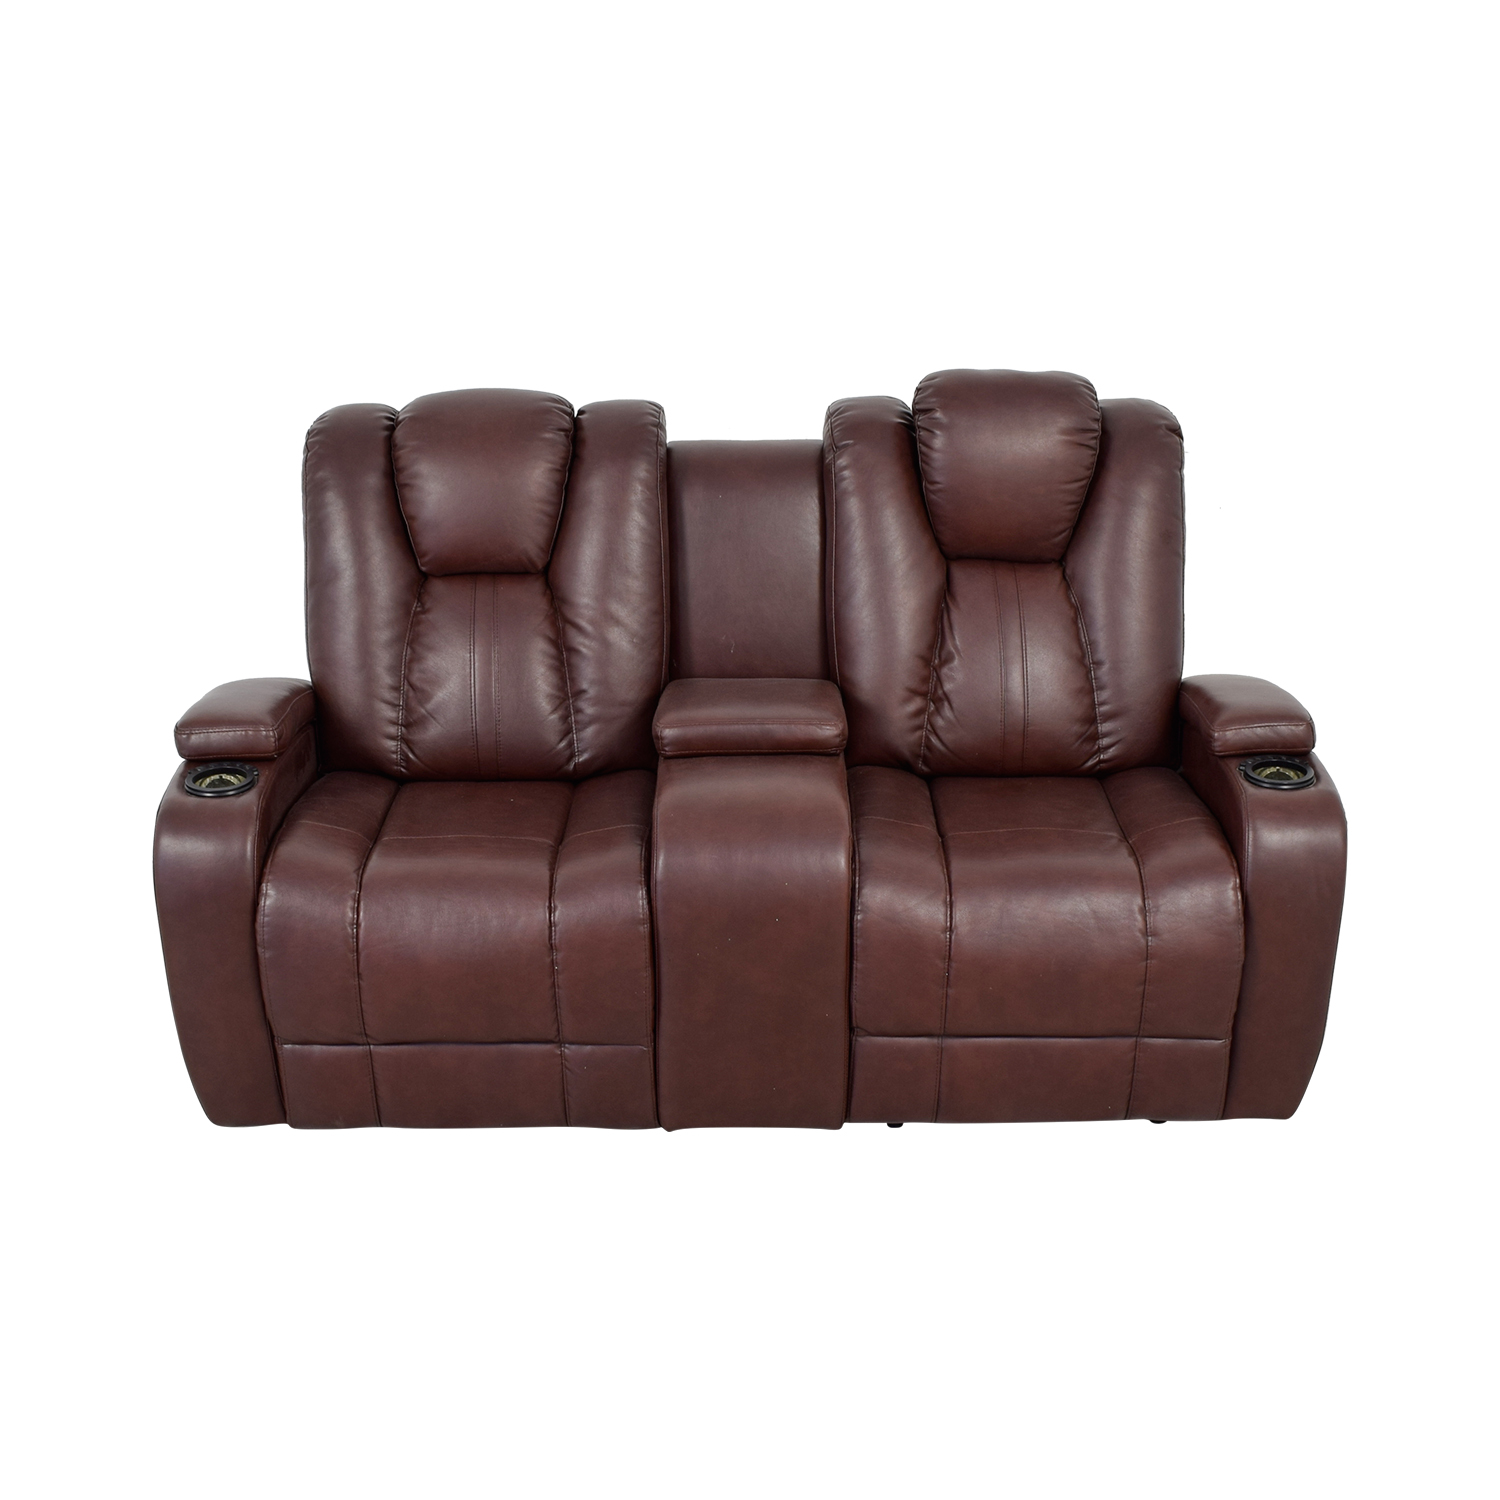 Bob's Furniture Bob's Furniture Brown Power Dual Reclining Console Loveseat discount